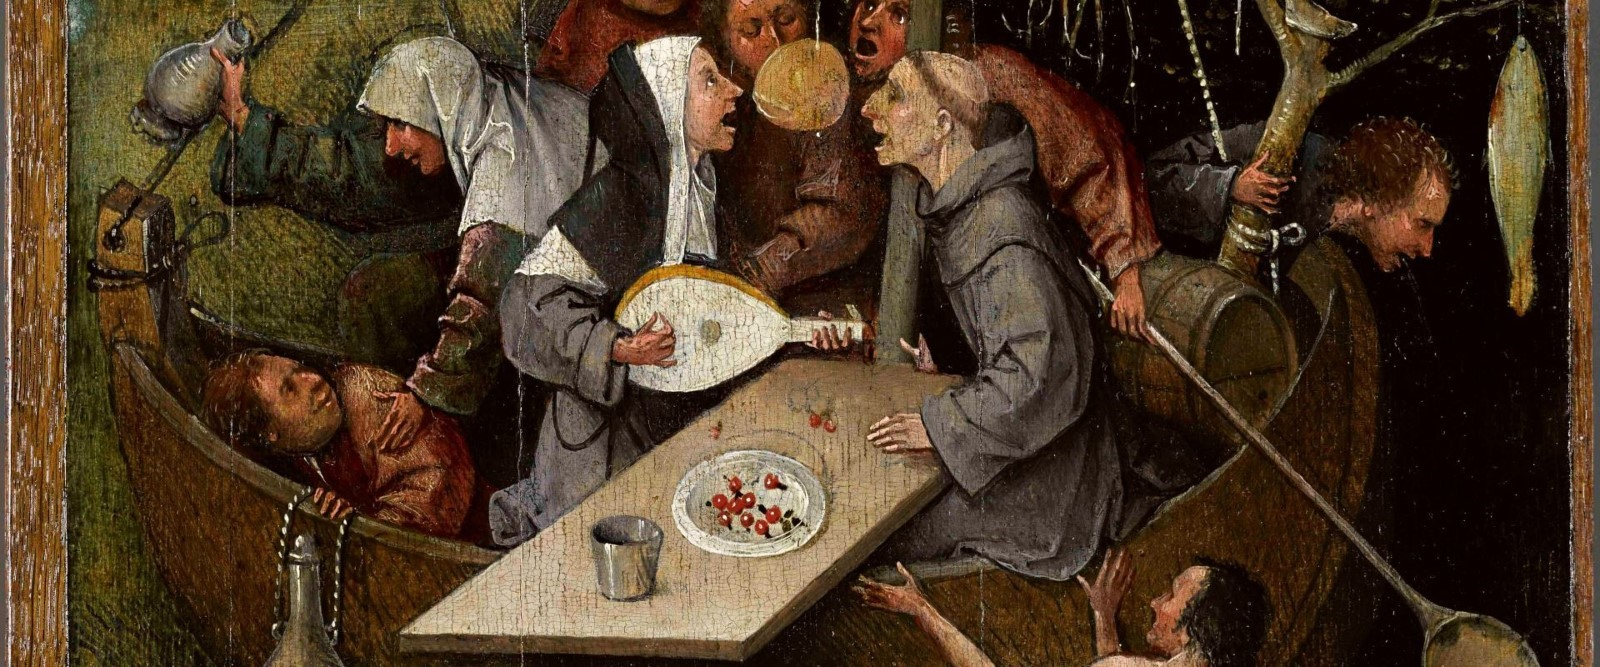 Armchair Travel | Curious World of Hieronymus Bosch